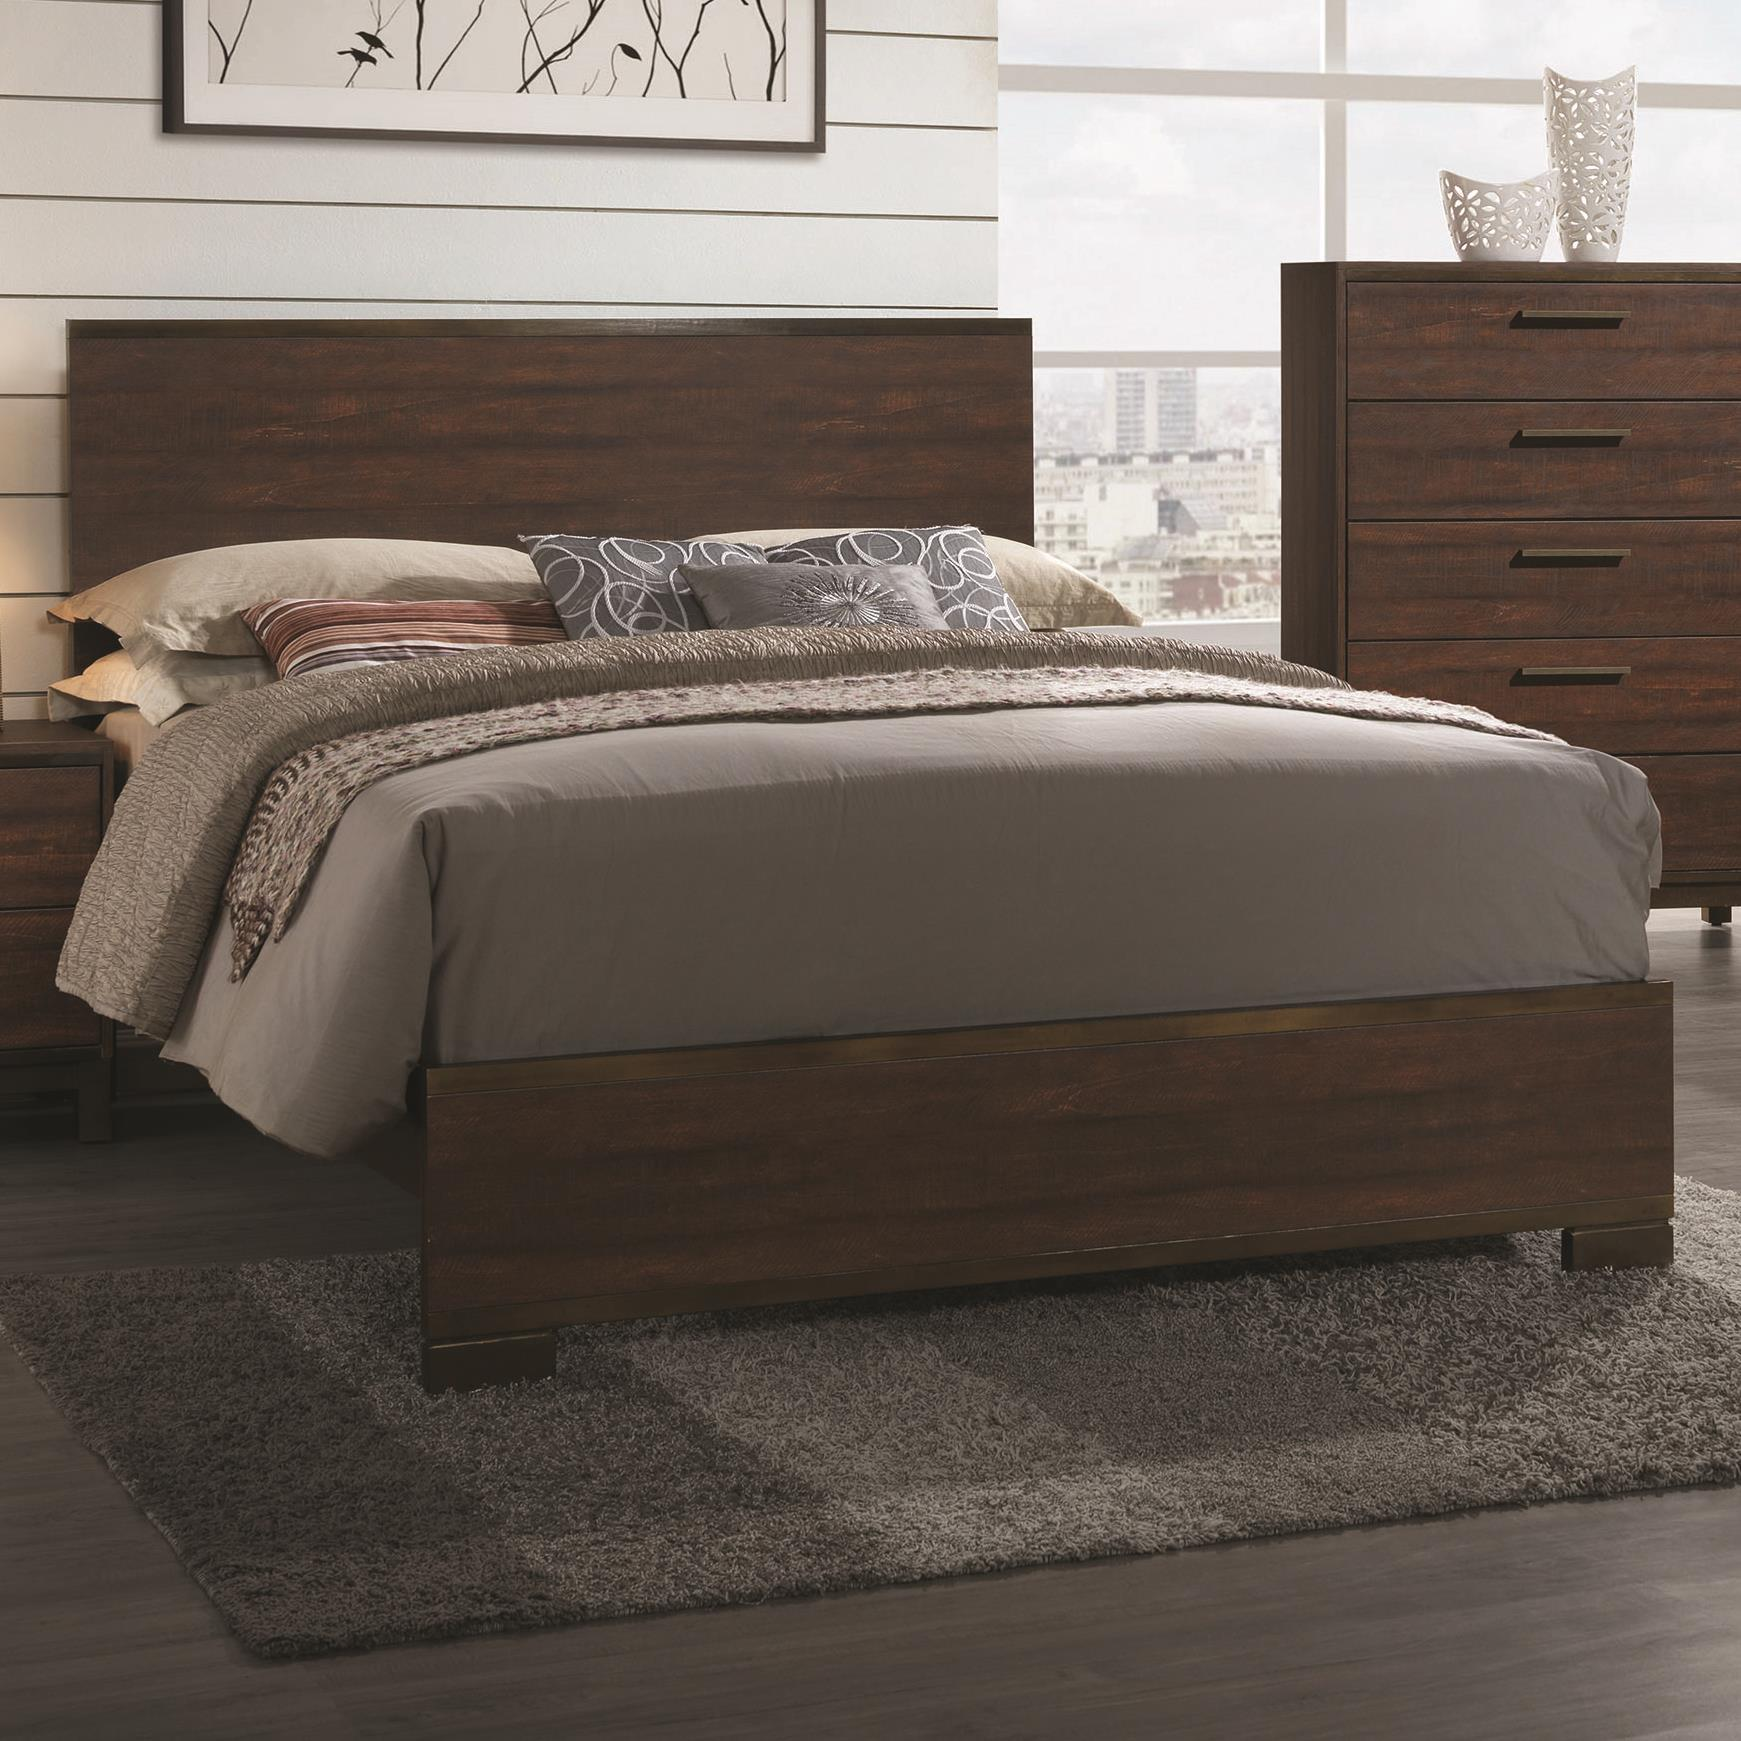 coaster edmonton queen bed with wood headboard value city furniture platform beds low. Black Bedroom Furniture Sets. Home Design Ideas